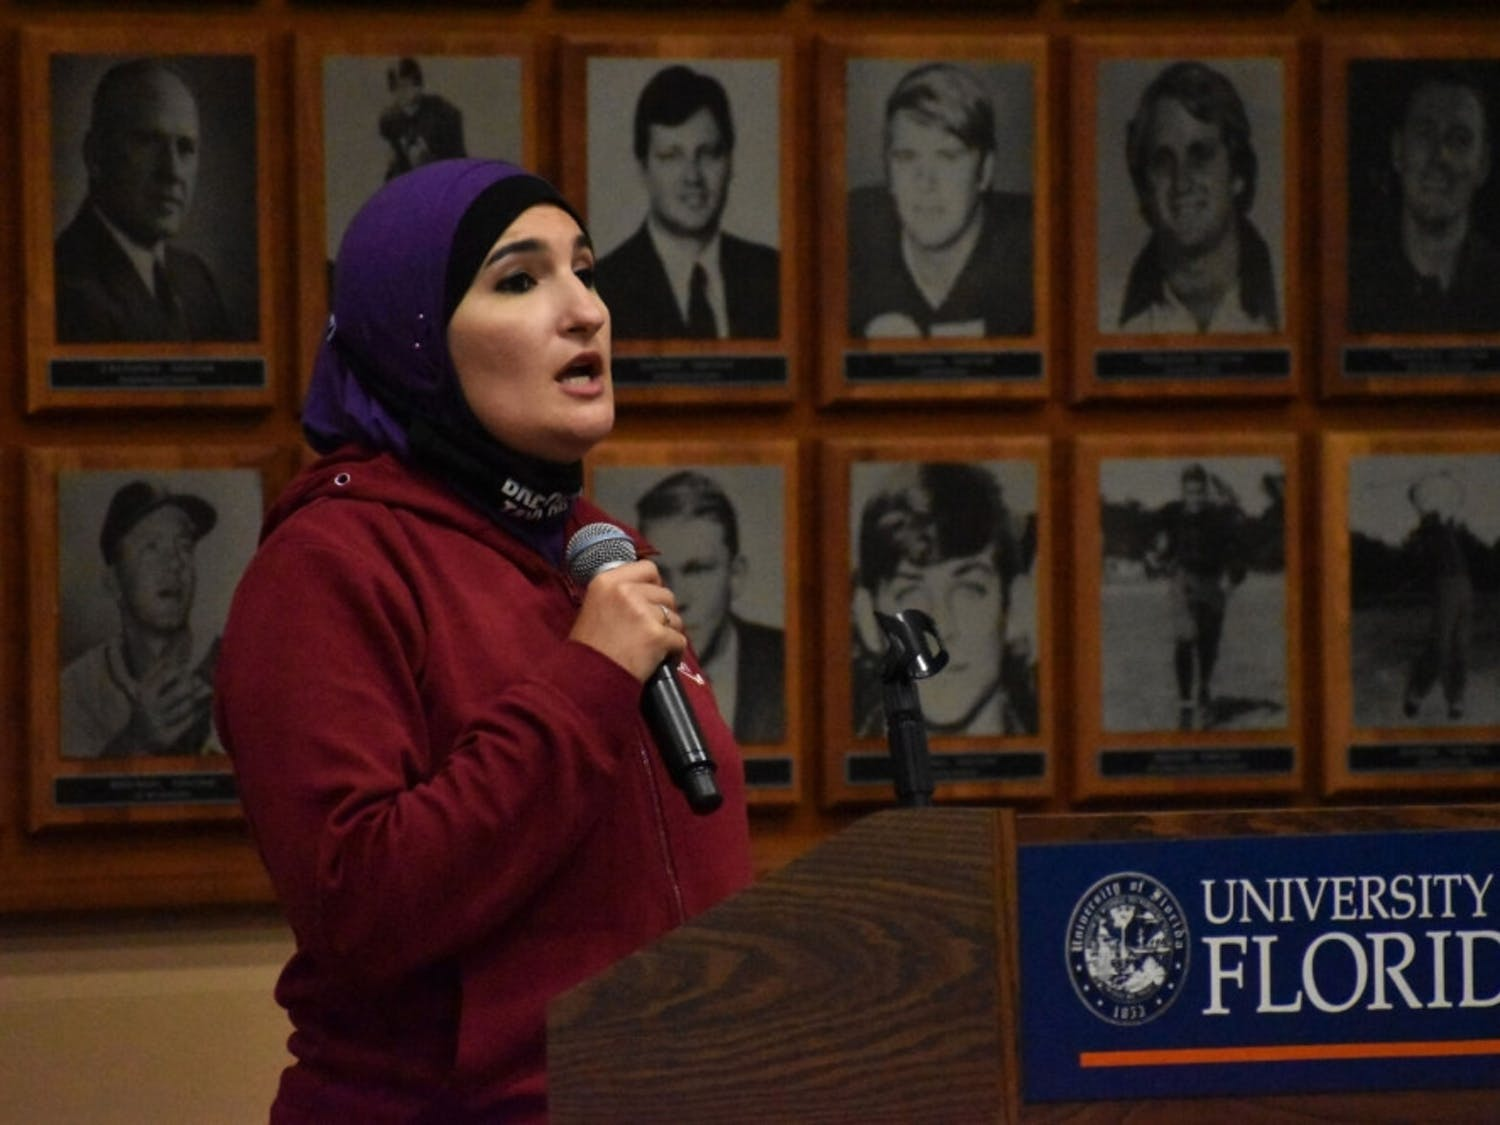 Linda Sarsour, a political activist known for her role as co-chair of the 2017 Women's March, speaks to UF students Tuesday night, Oct. 27, 2020, about the intersection between resistance and Islam at the Touchdown Terrace.